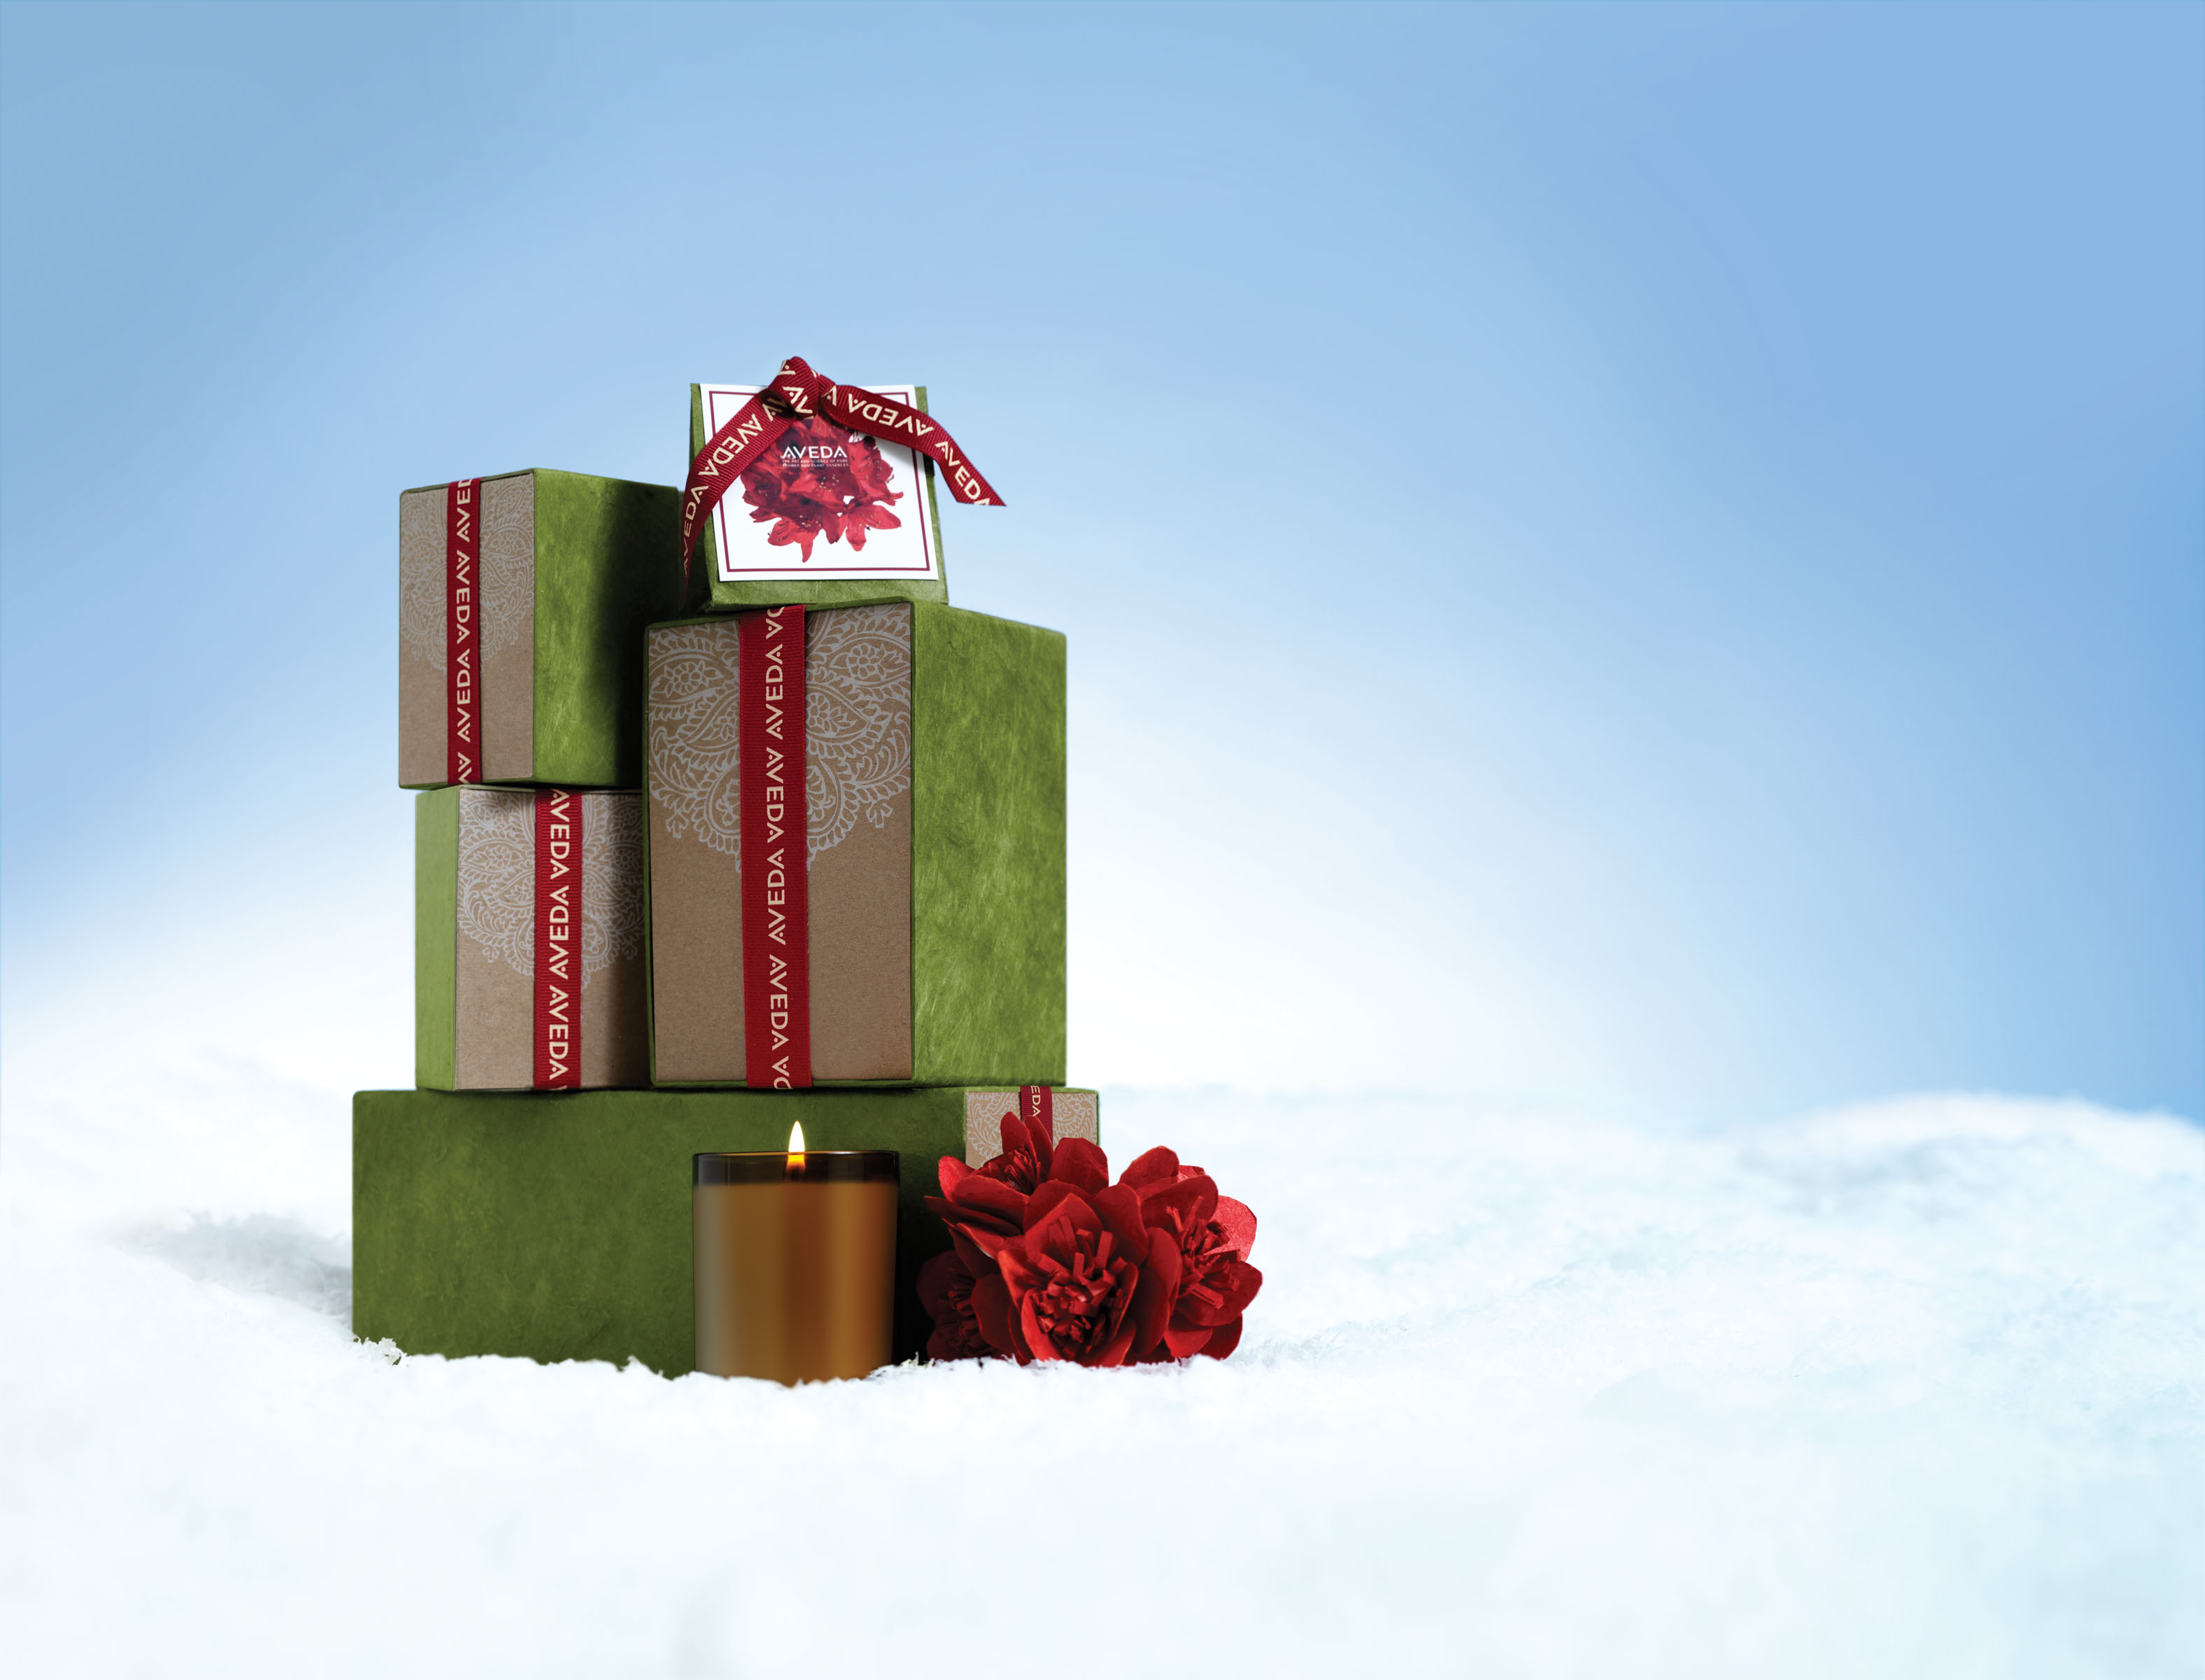 Aveda Tower of Gifts